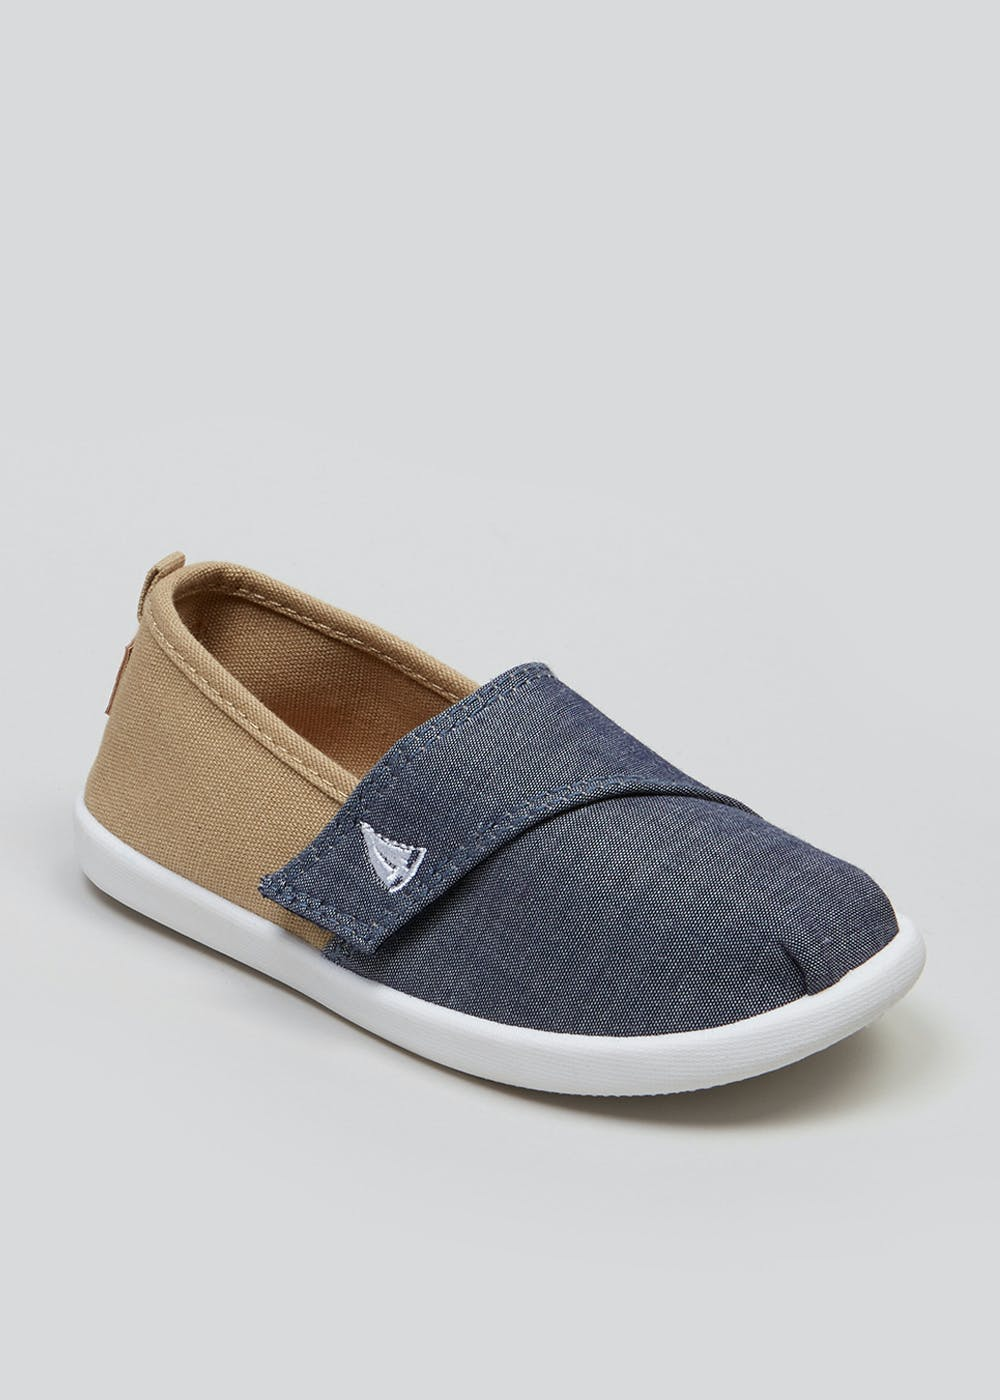 Brand New Clothing, Shoes & Accessories Next Older Boys Shoes Size 8 Kids' Clothing, Shoes & Accs